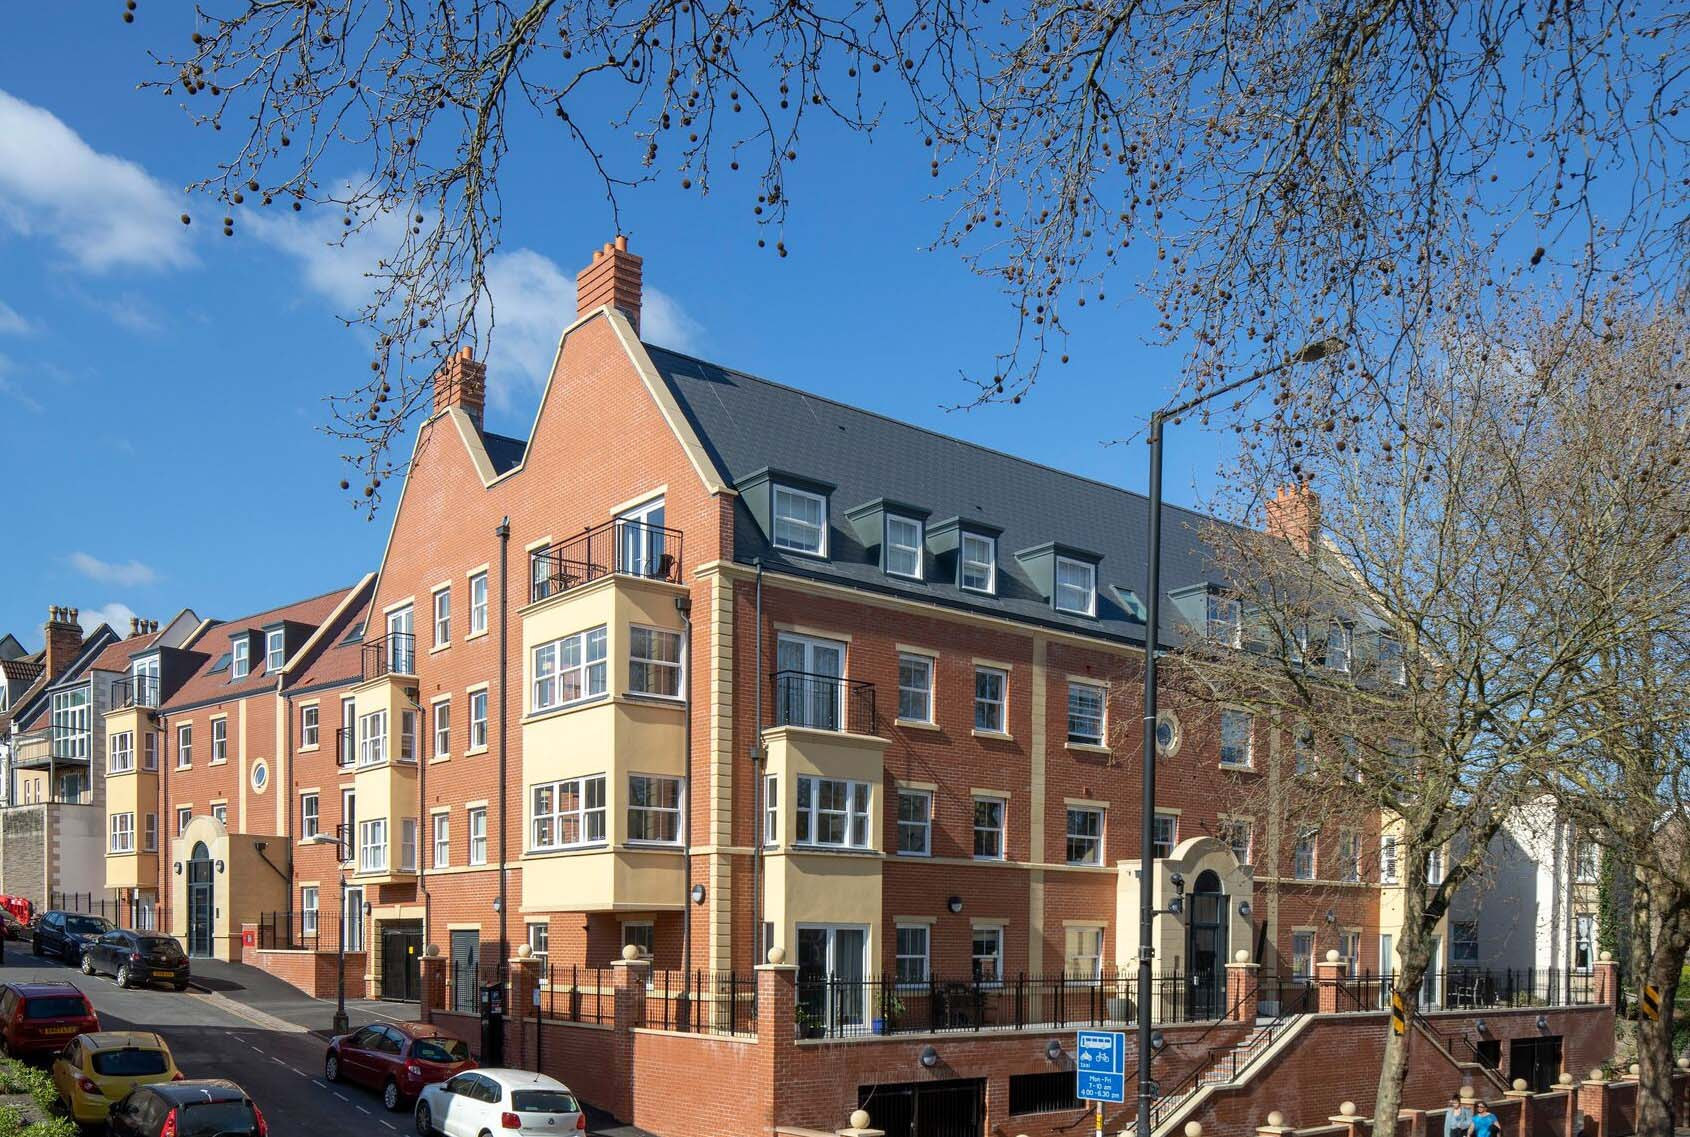 The Old Library development benefits from Kingspan Insulation solution